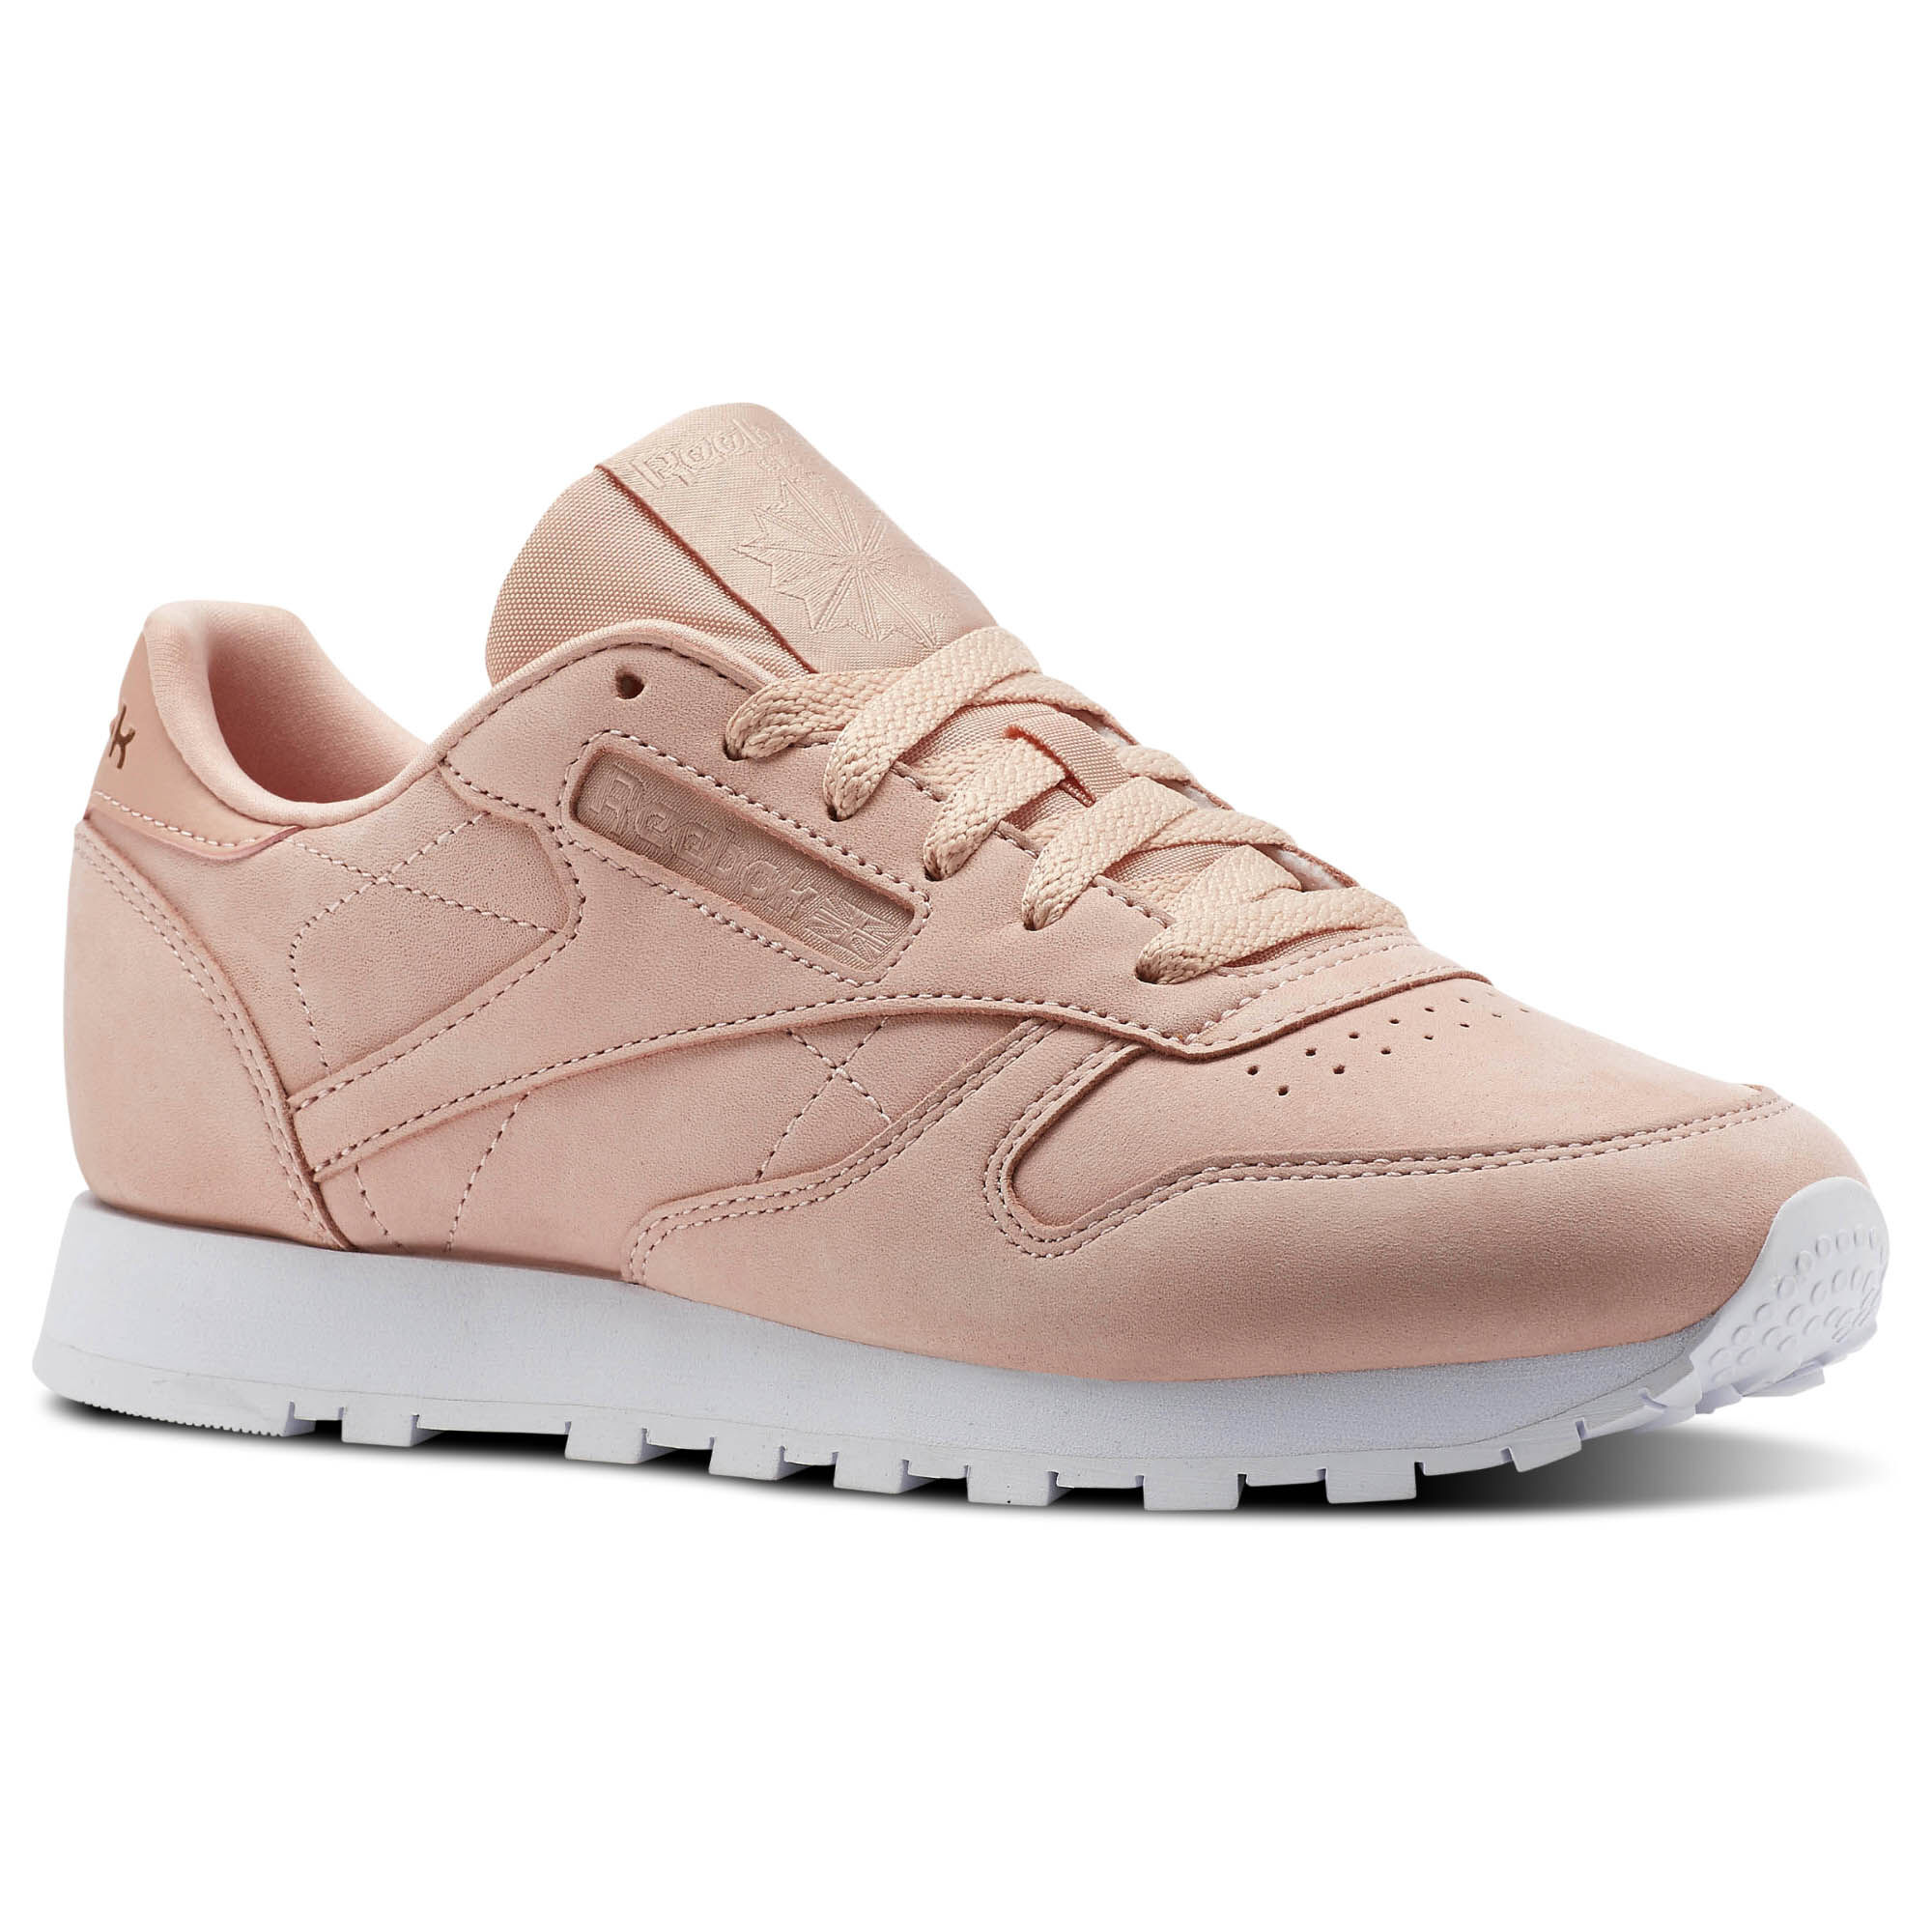 Womens Classic Nubuck & Leather Sneakers Reebok kAm18LY